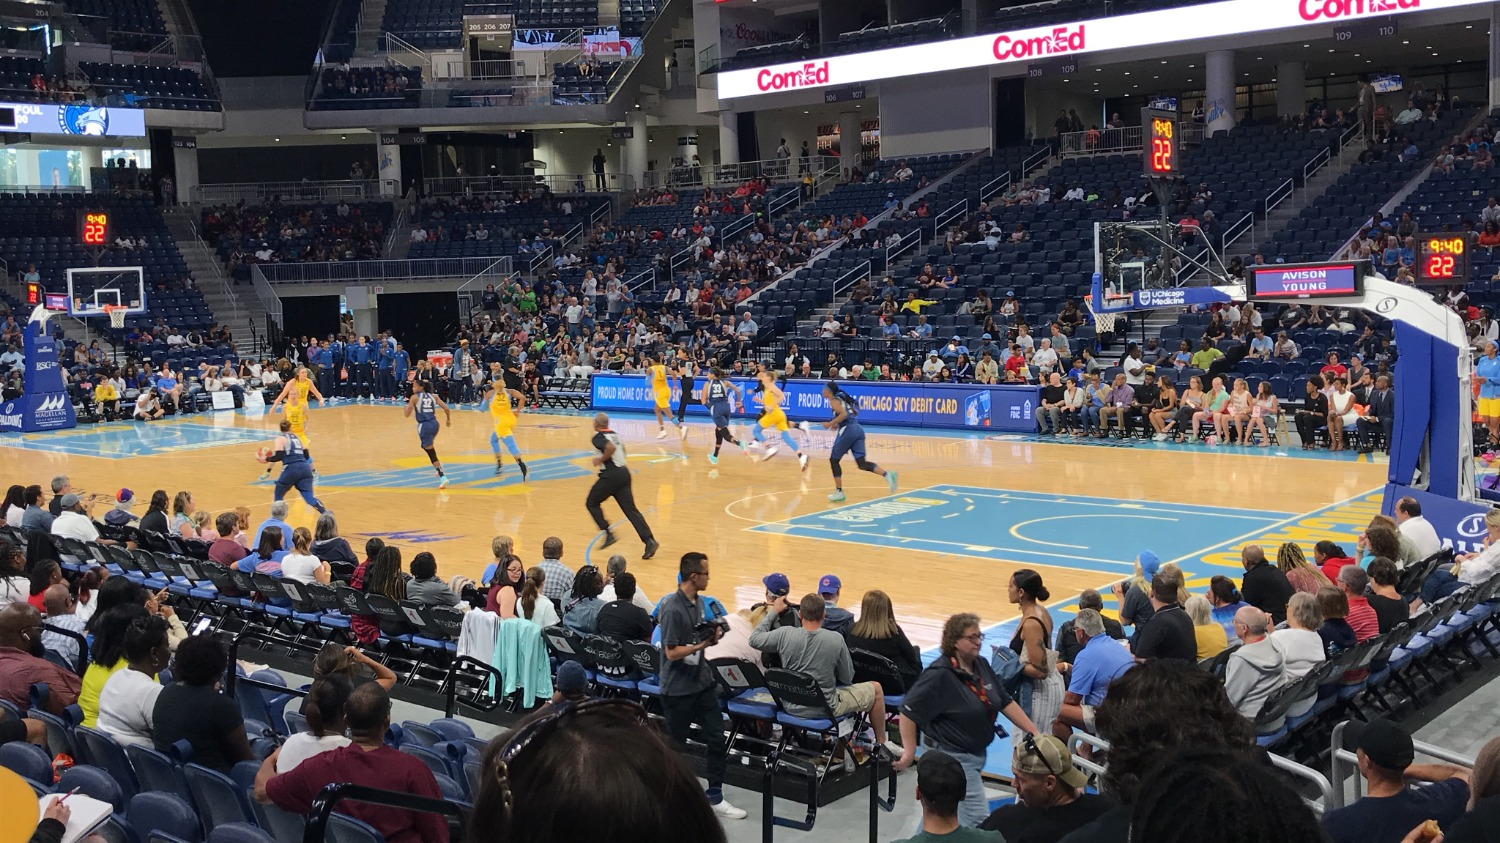 The Chicago Sky take on the Minnesota Lynx at the Wintrust Arena in Chicago, Illinois.